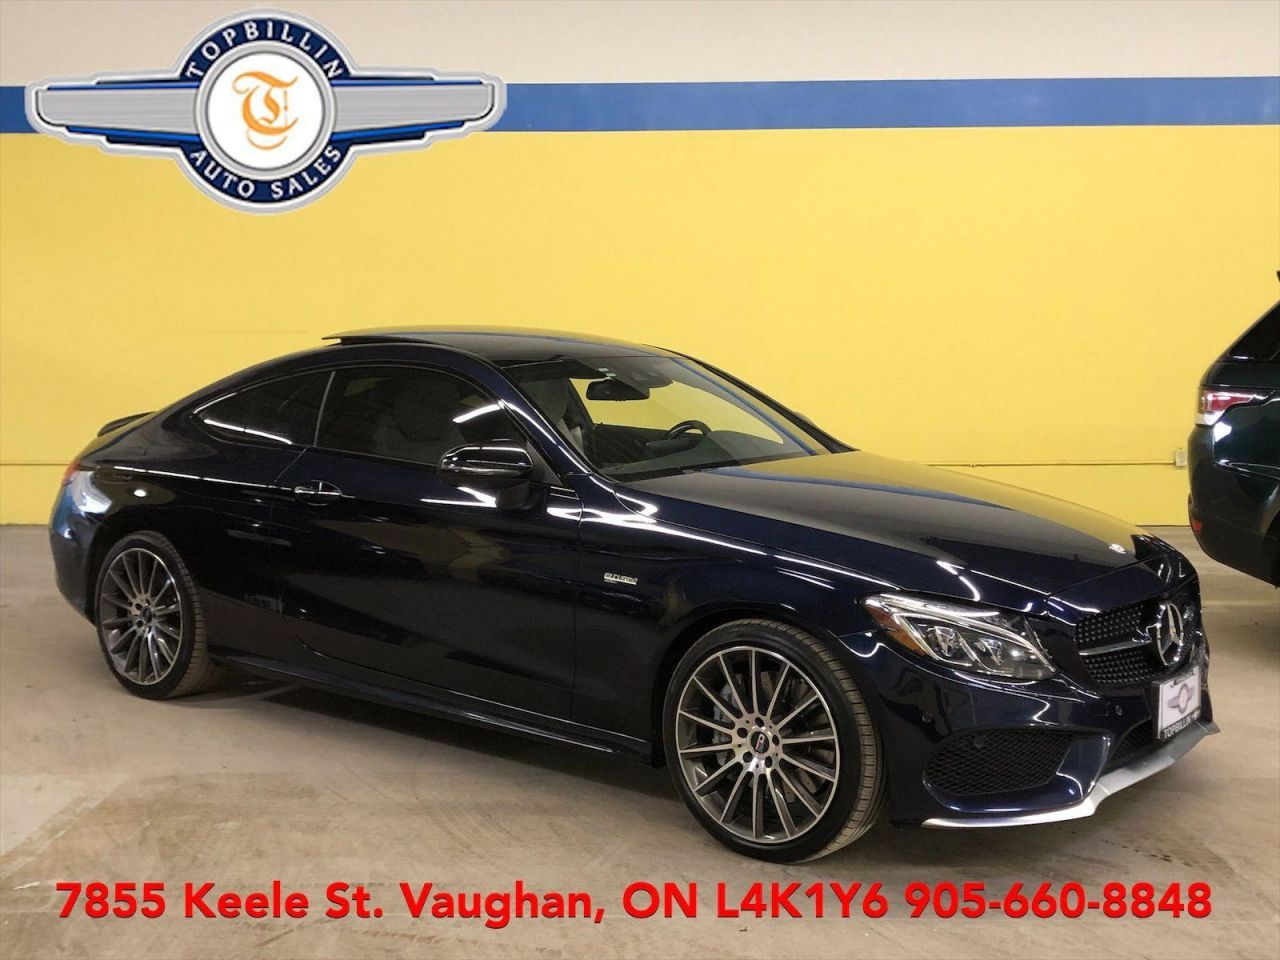 2017 Mercedes-Benz C-Class AMG C 43 4MATIC, 2 Years Warranty